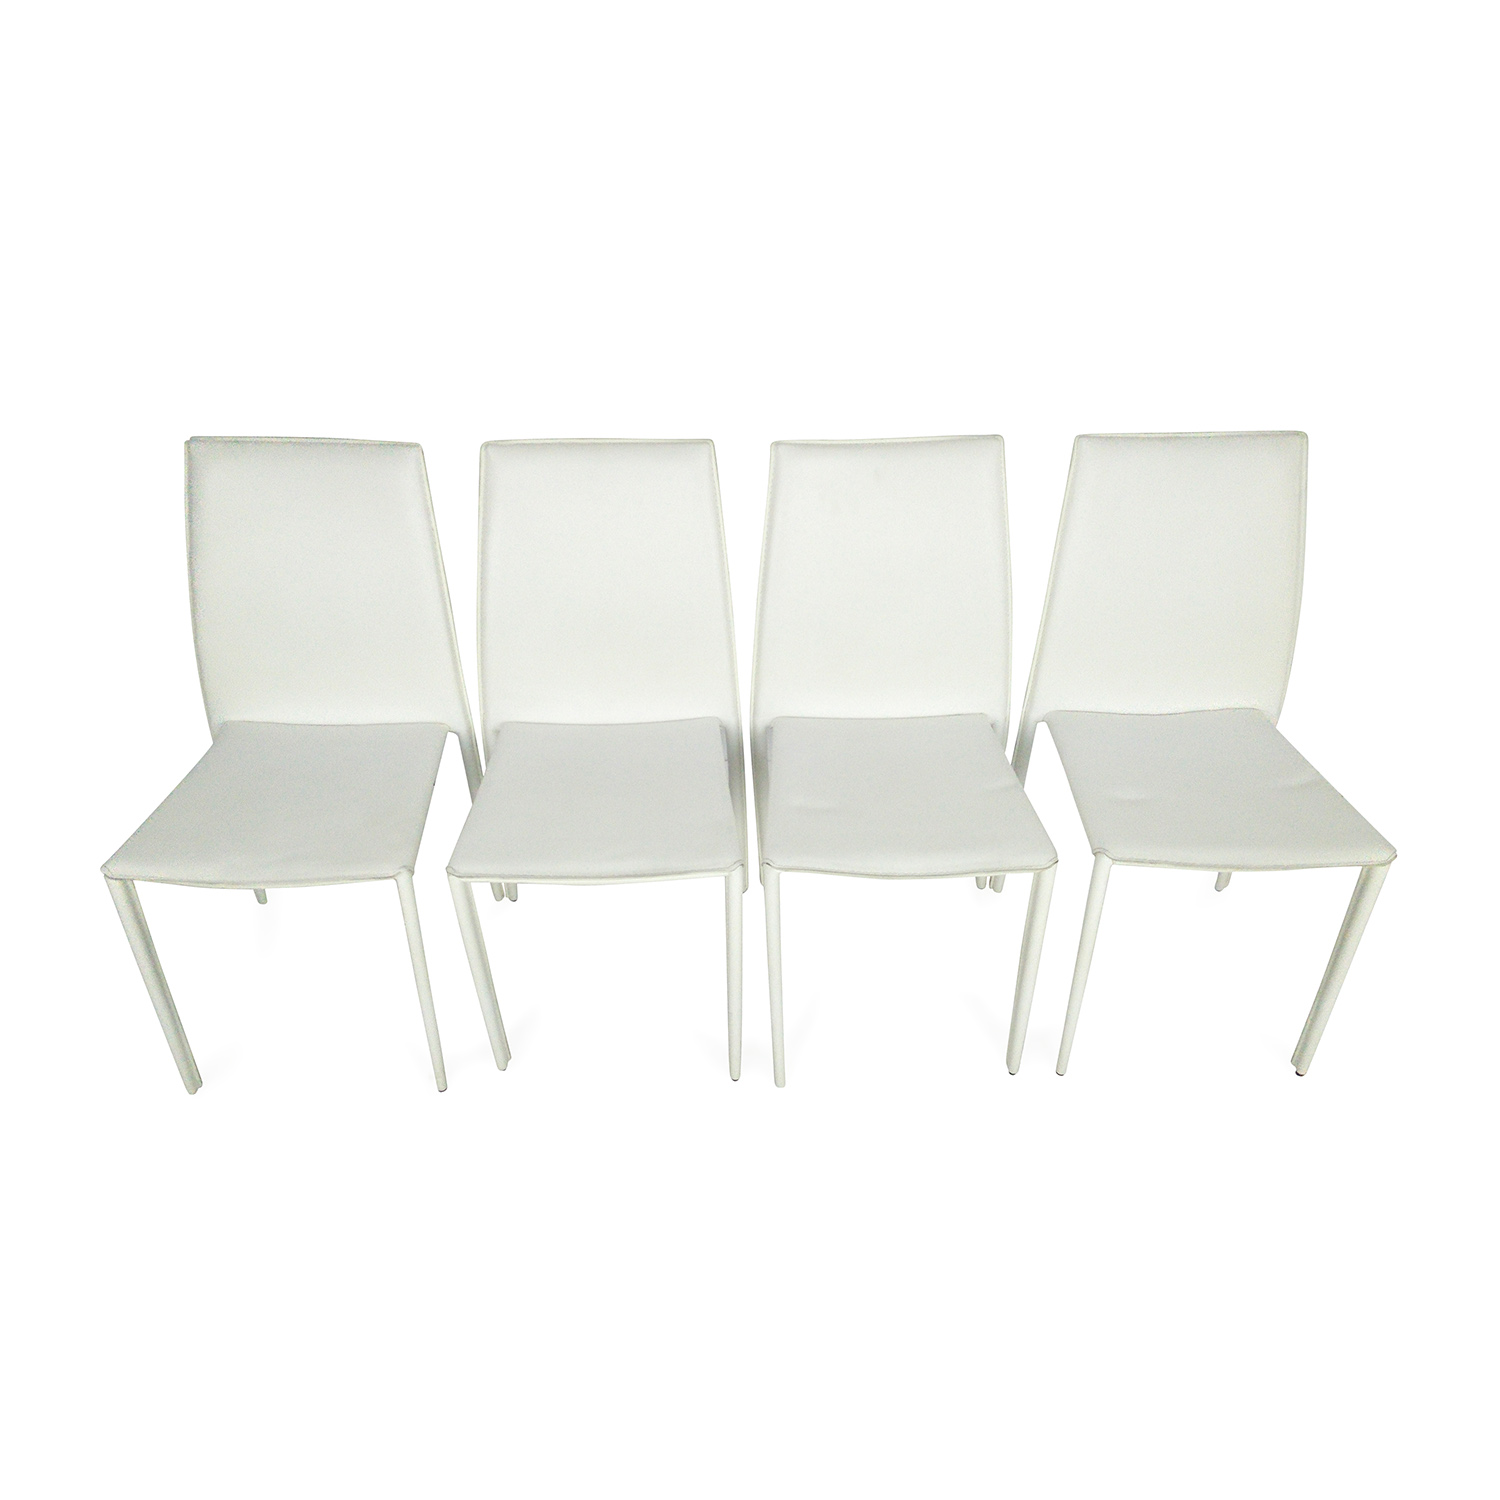 51 OFF All Modern All Modern White Leather Dining Chairs Chairs